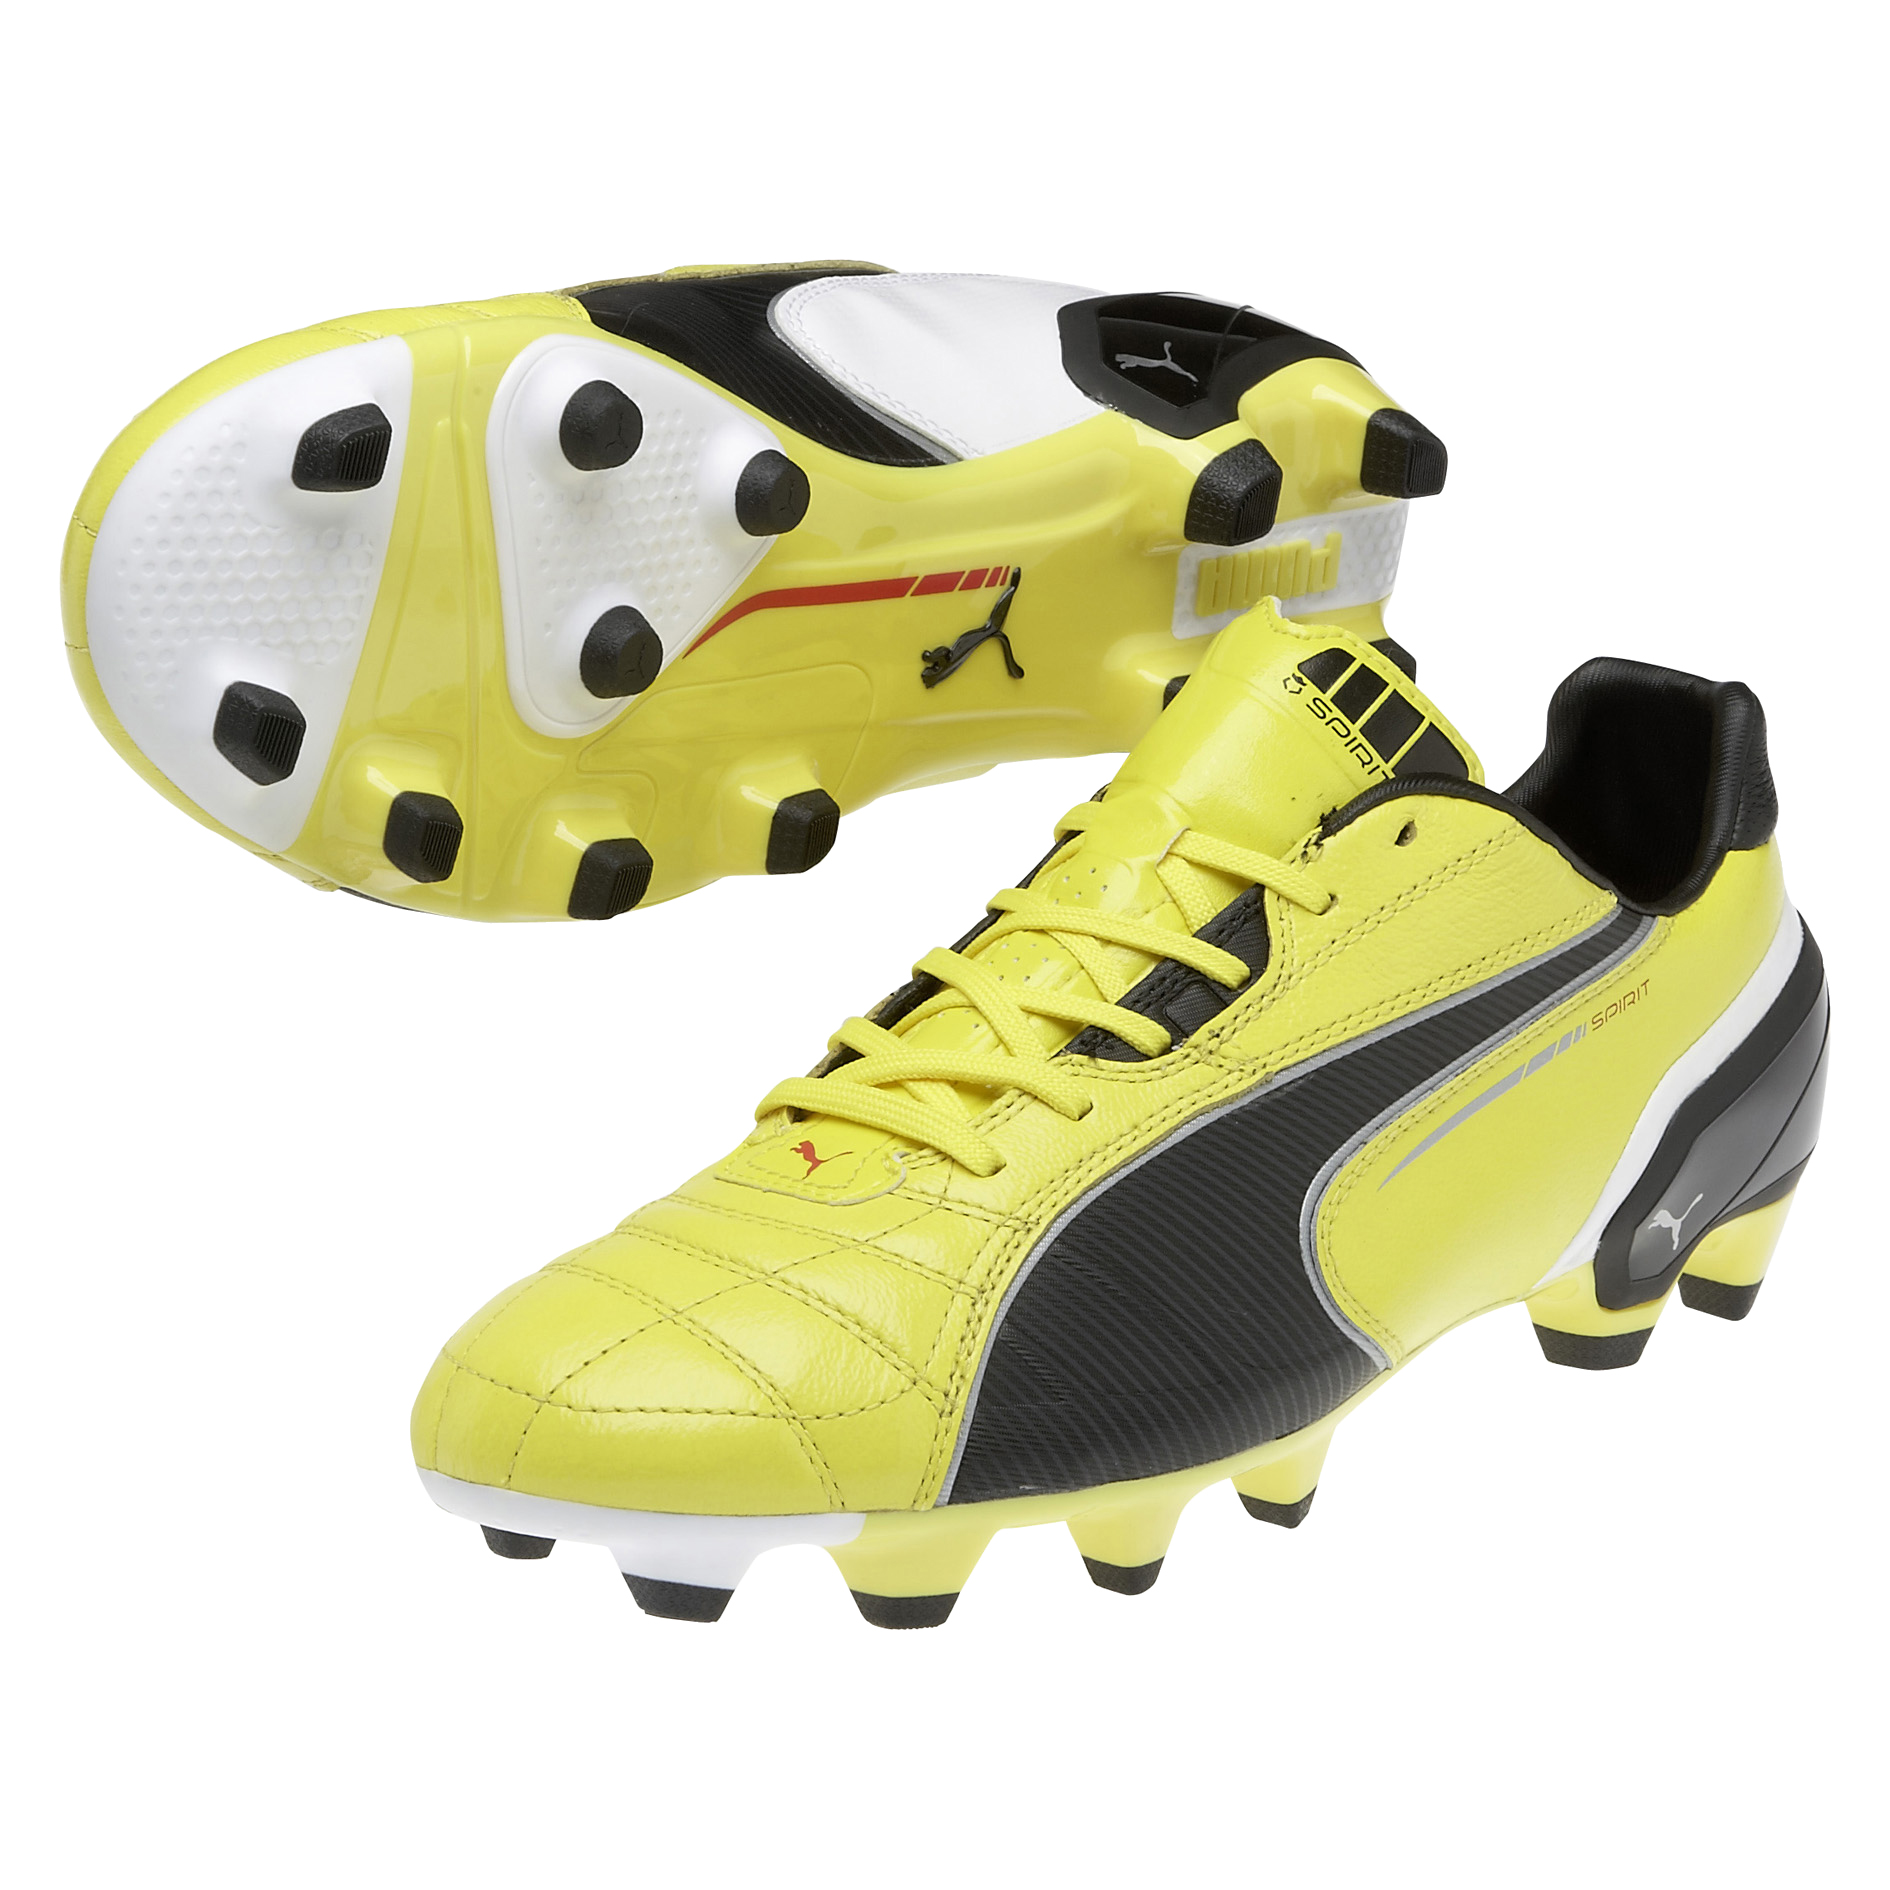 Puma Spirit Firm Ground Football Boots - Blazing Yellow/Black/White